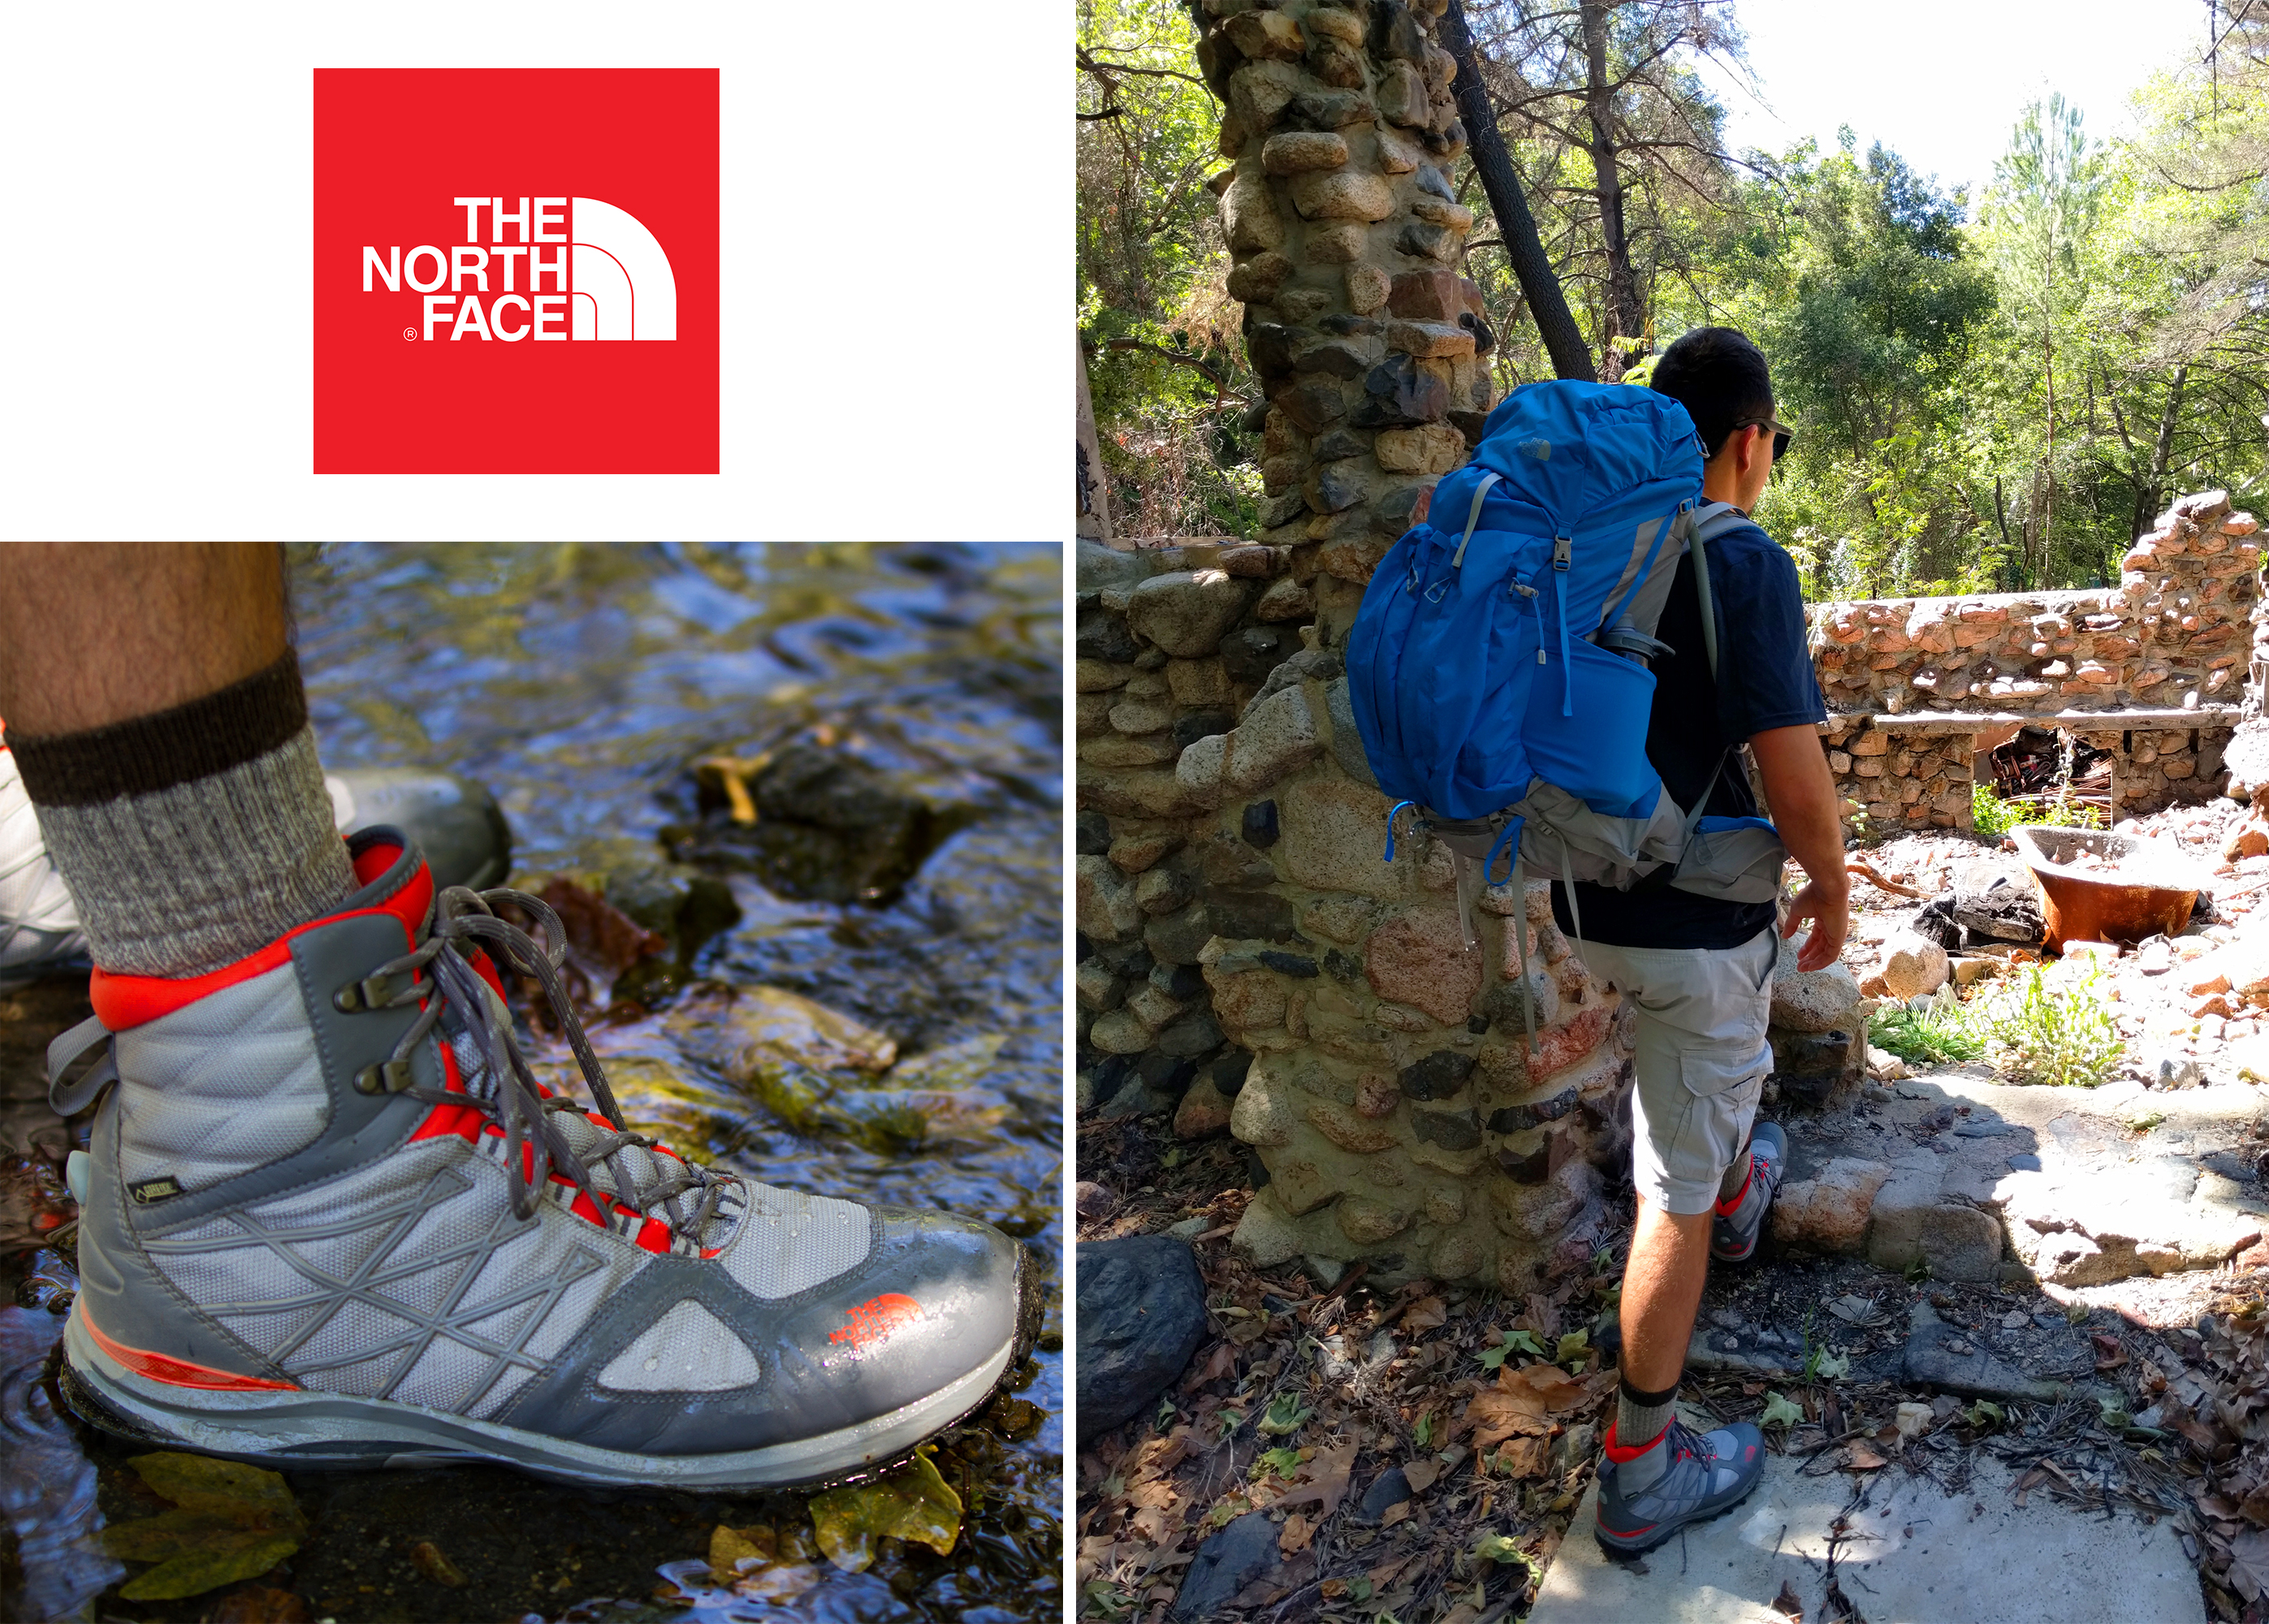 brand new d05b5 4bc17 The North Face Backpacking Essentials: Banchee 65 + Ultra ...